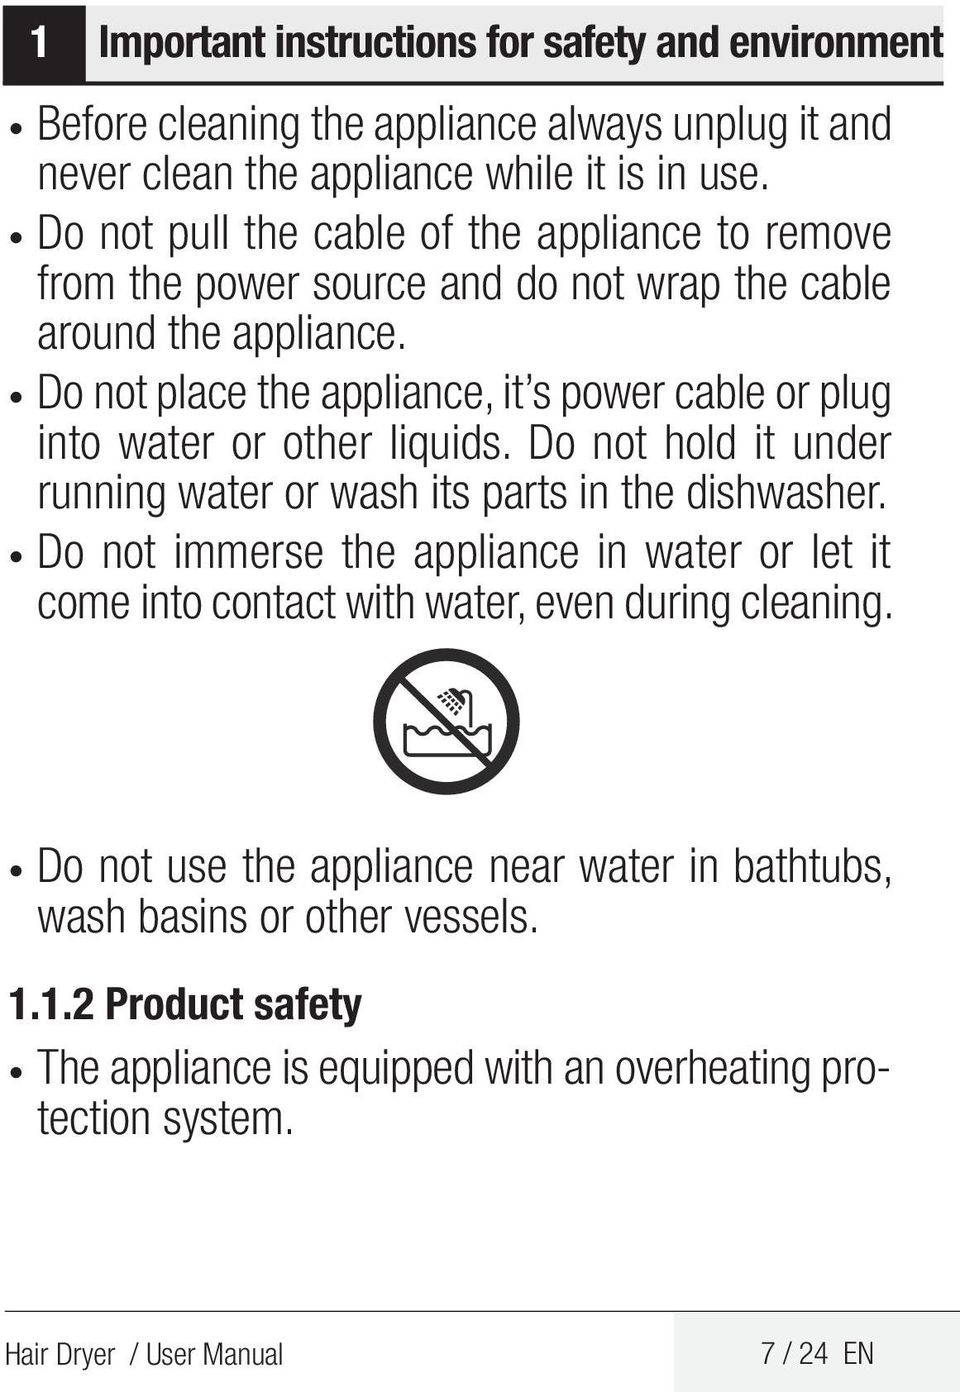 Do not place the appliance, it s power cable or plug into water or other liquids. Do not hold it under running water or wash its parts in the dishwasher.